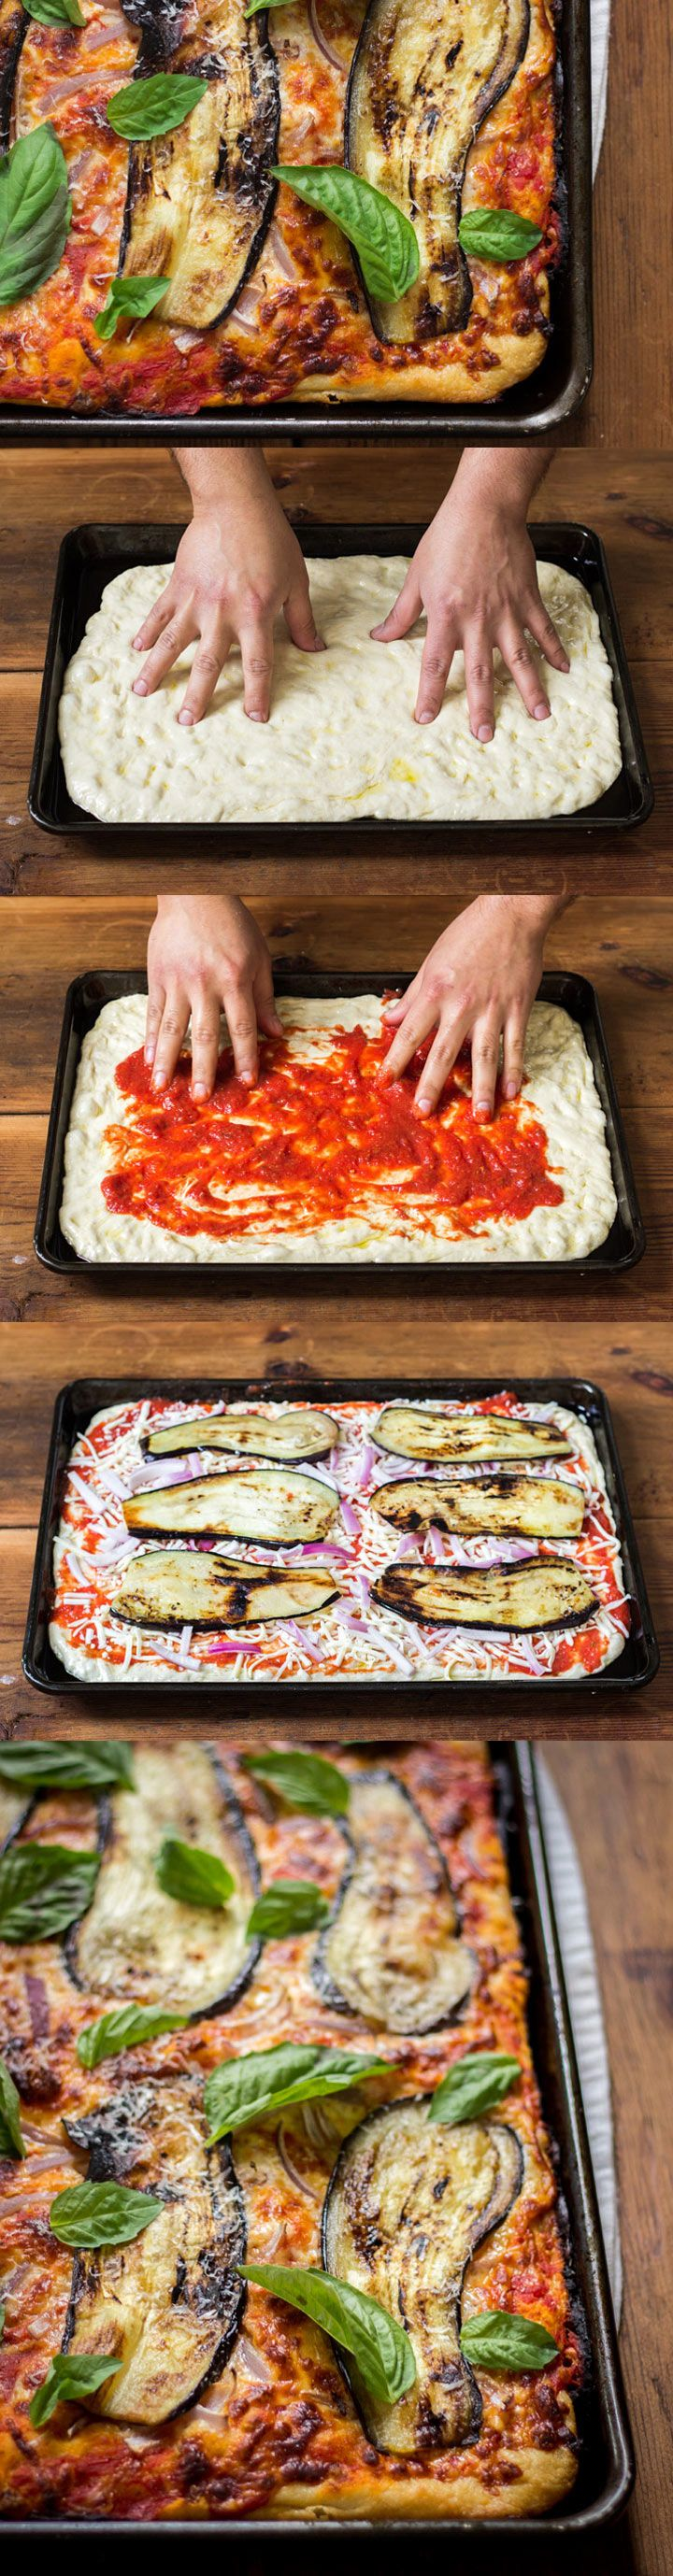 Sicilian Pizza with Eggplant - a classic Sicilian-style pan pizza with seared eggplant, red onions, and basil #pizzaweek